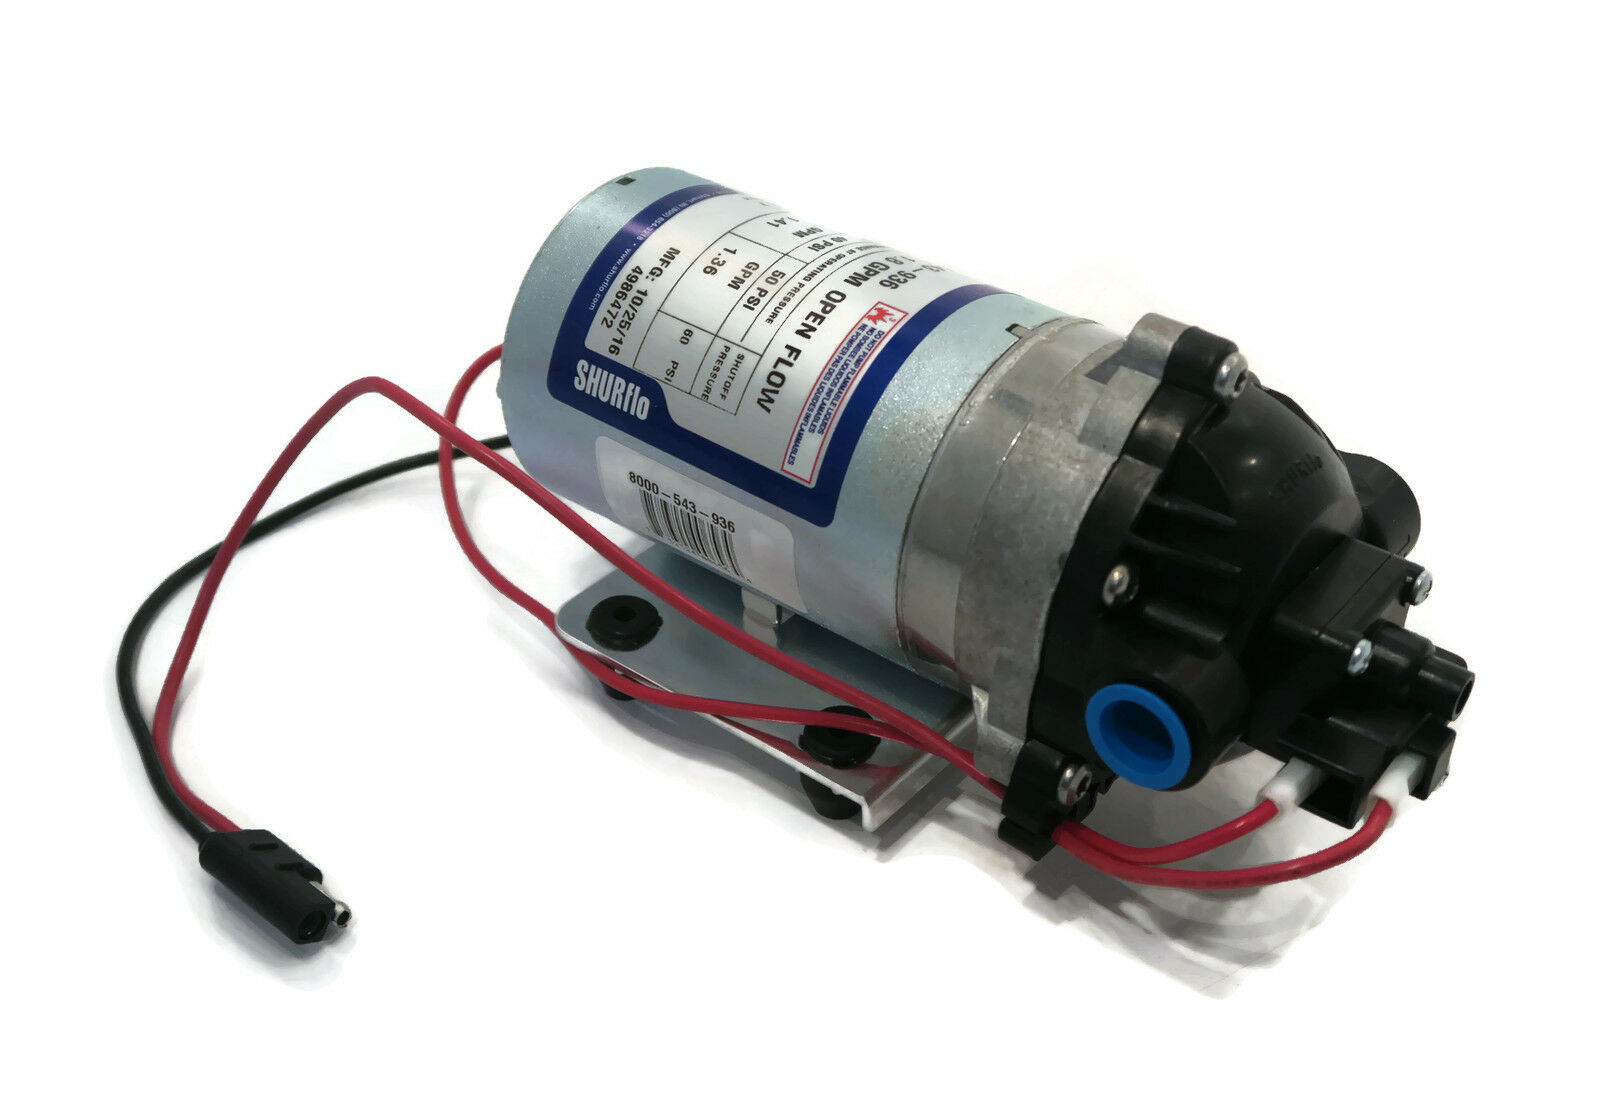 New Shurflo 12v Volt Demand Water Pump W Wiring Harness Camper Rv Trailer Boat